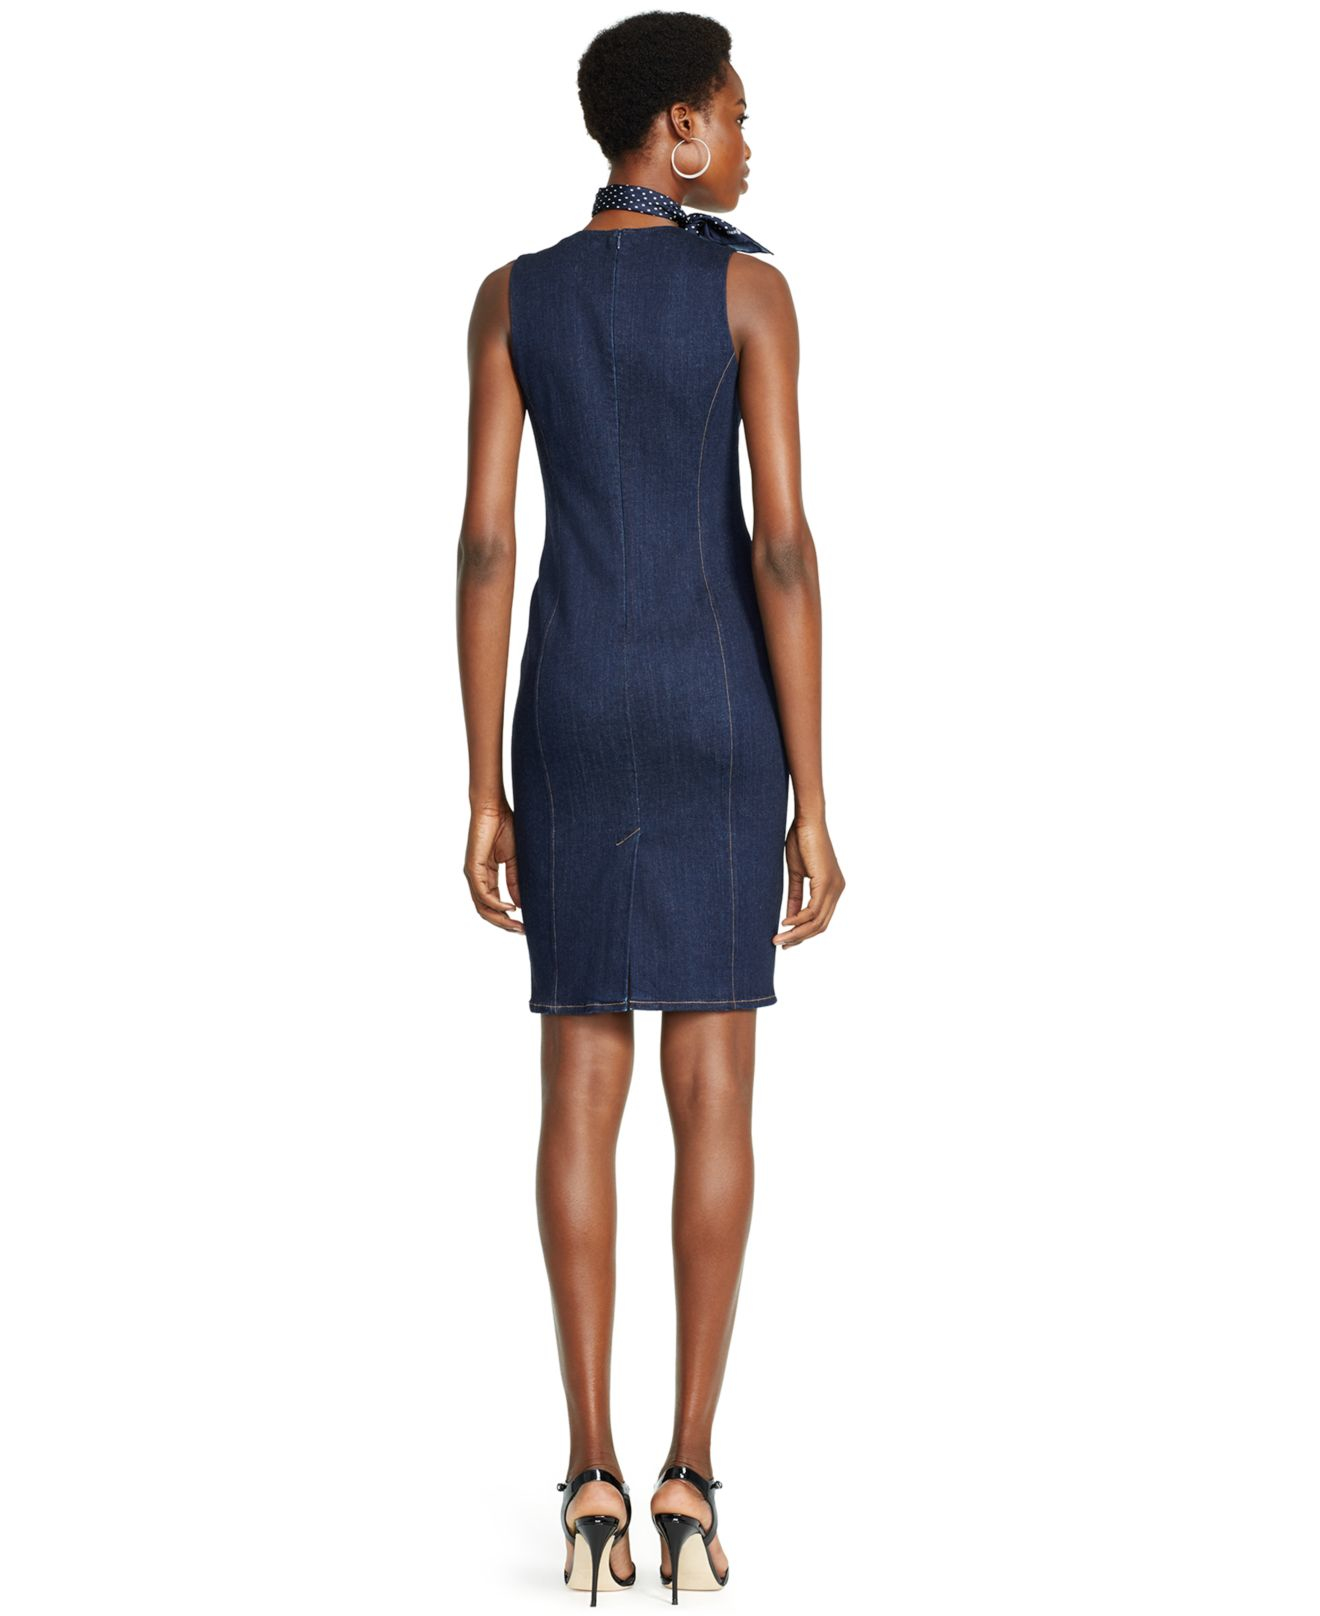 Polo ralph lauren Denim Sheath Dress in Black | Lyst